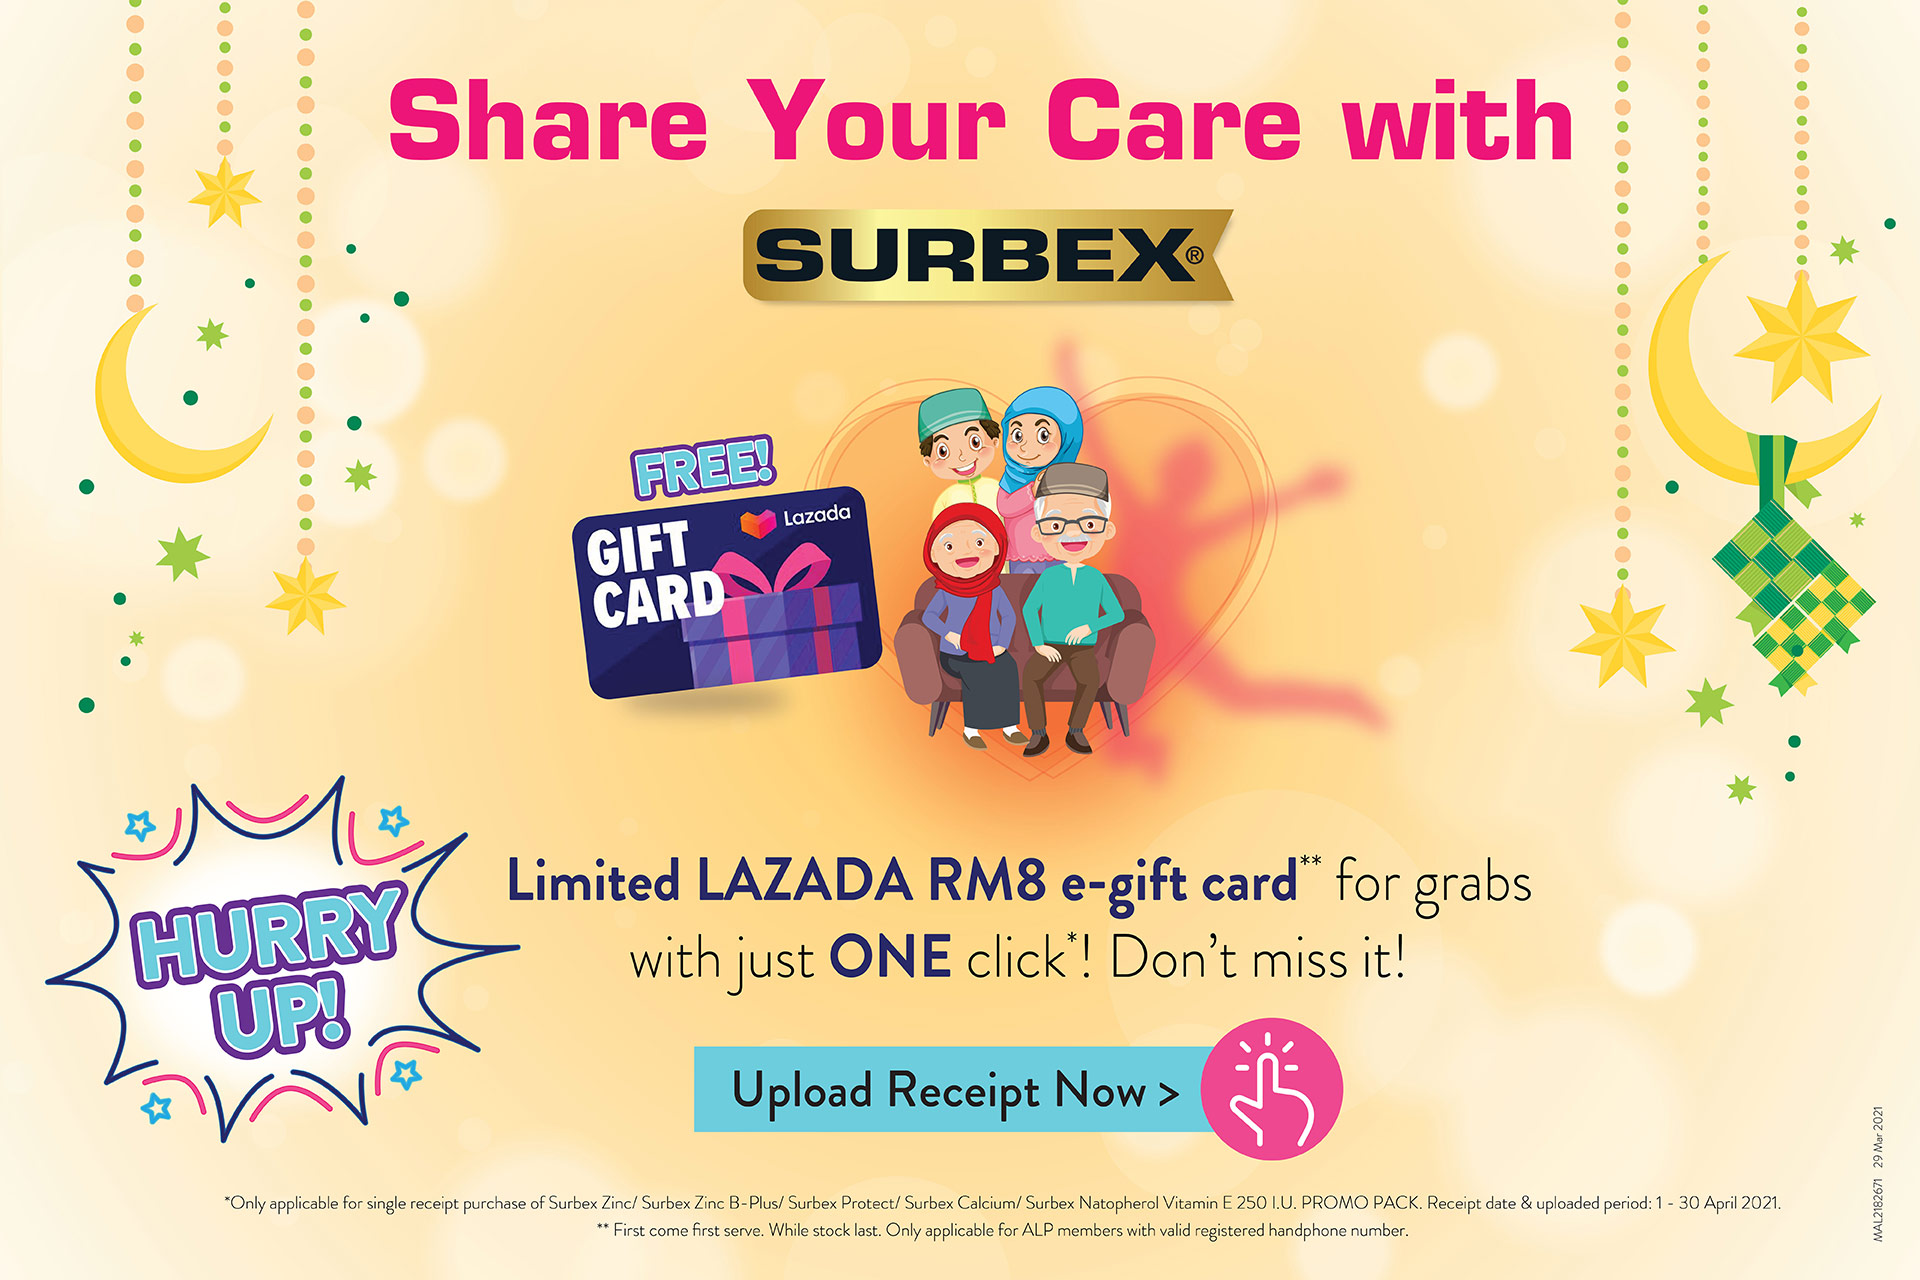 Share Your Care with SURBEX